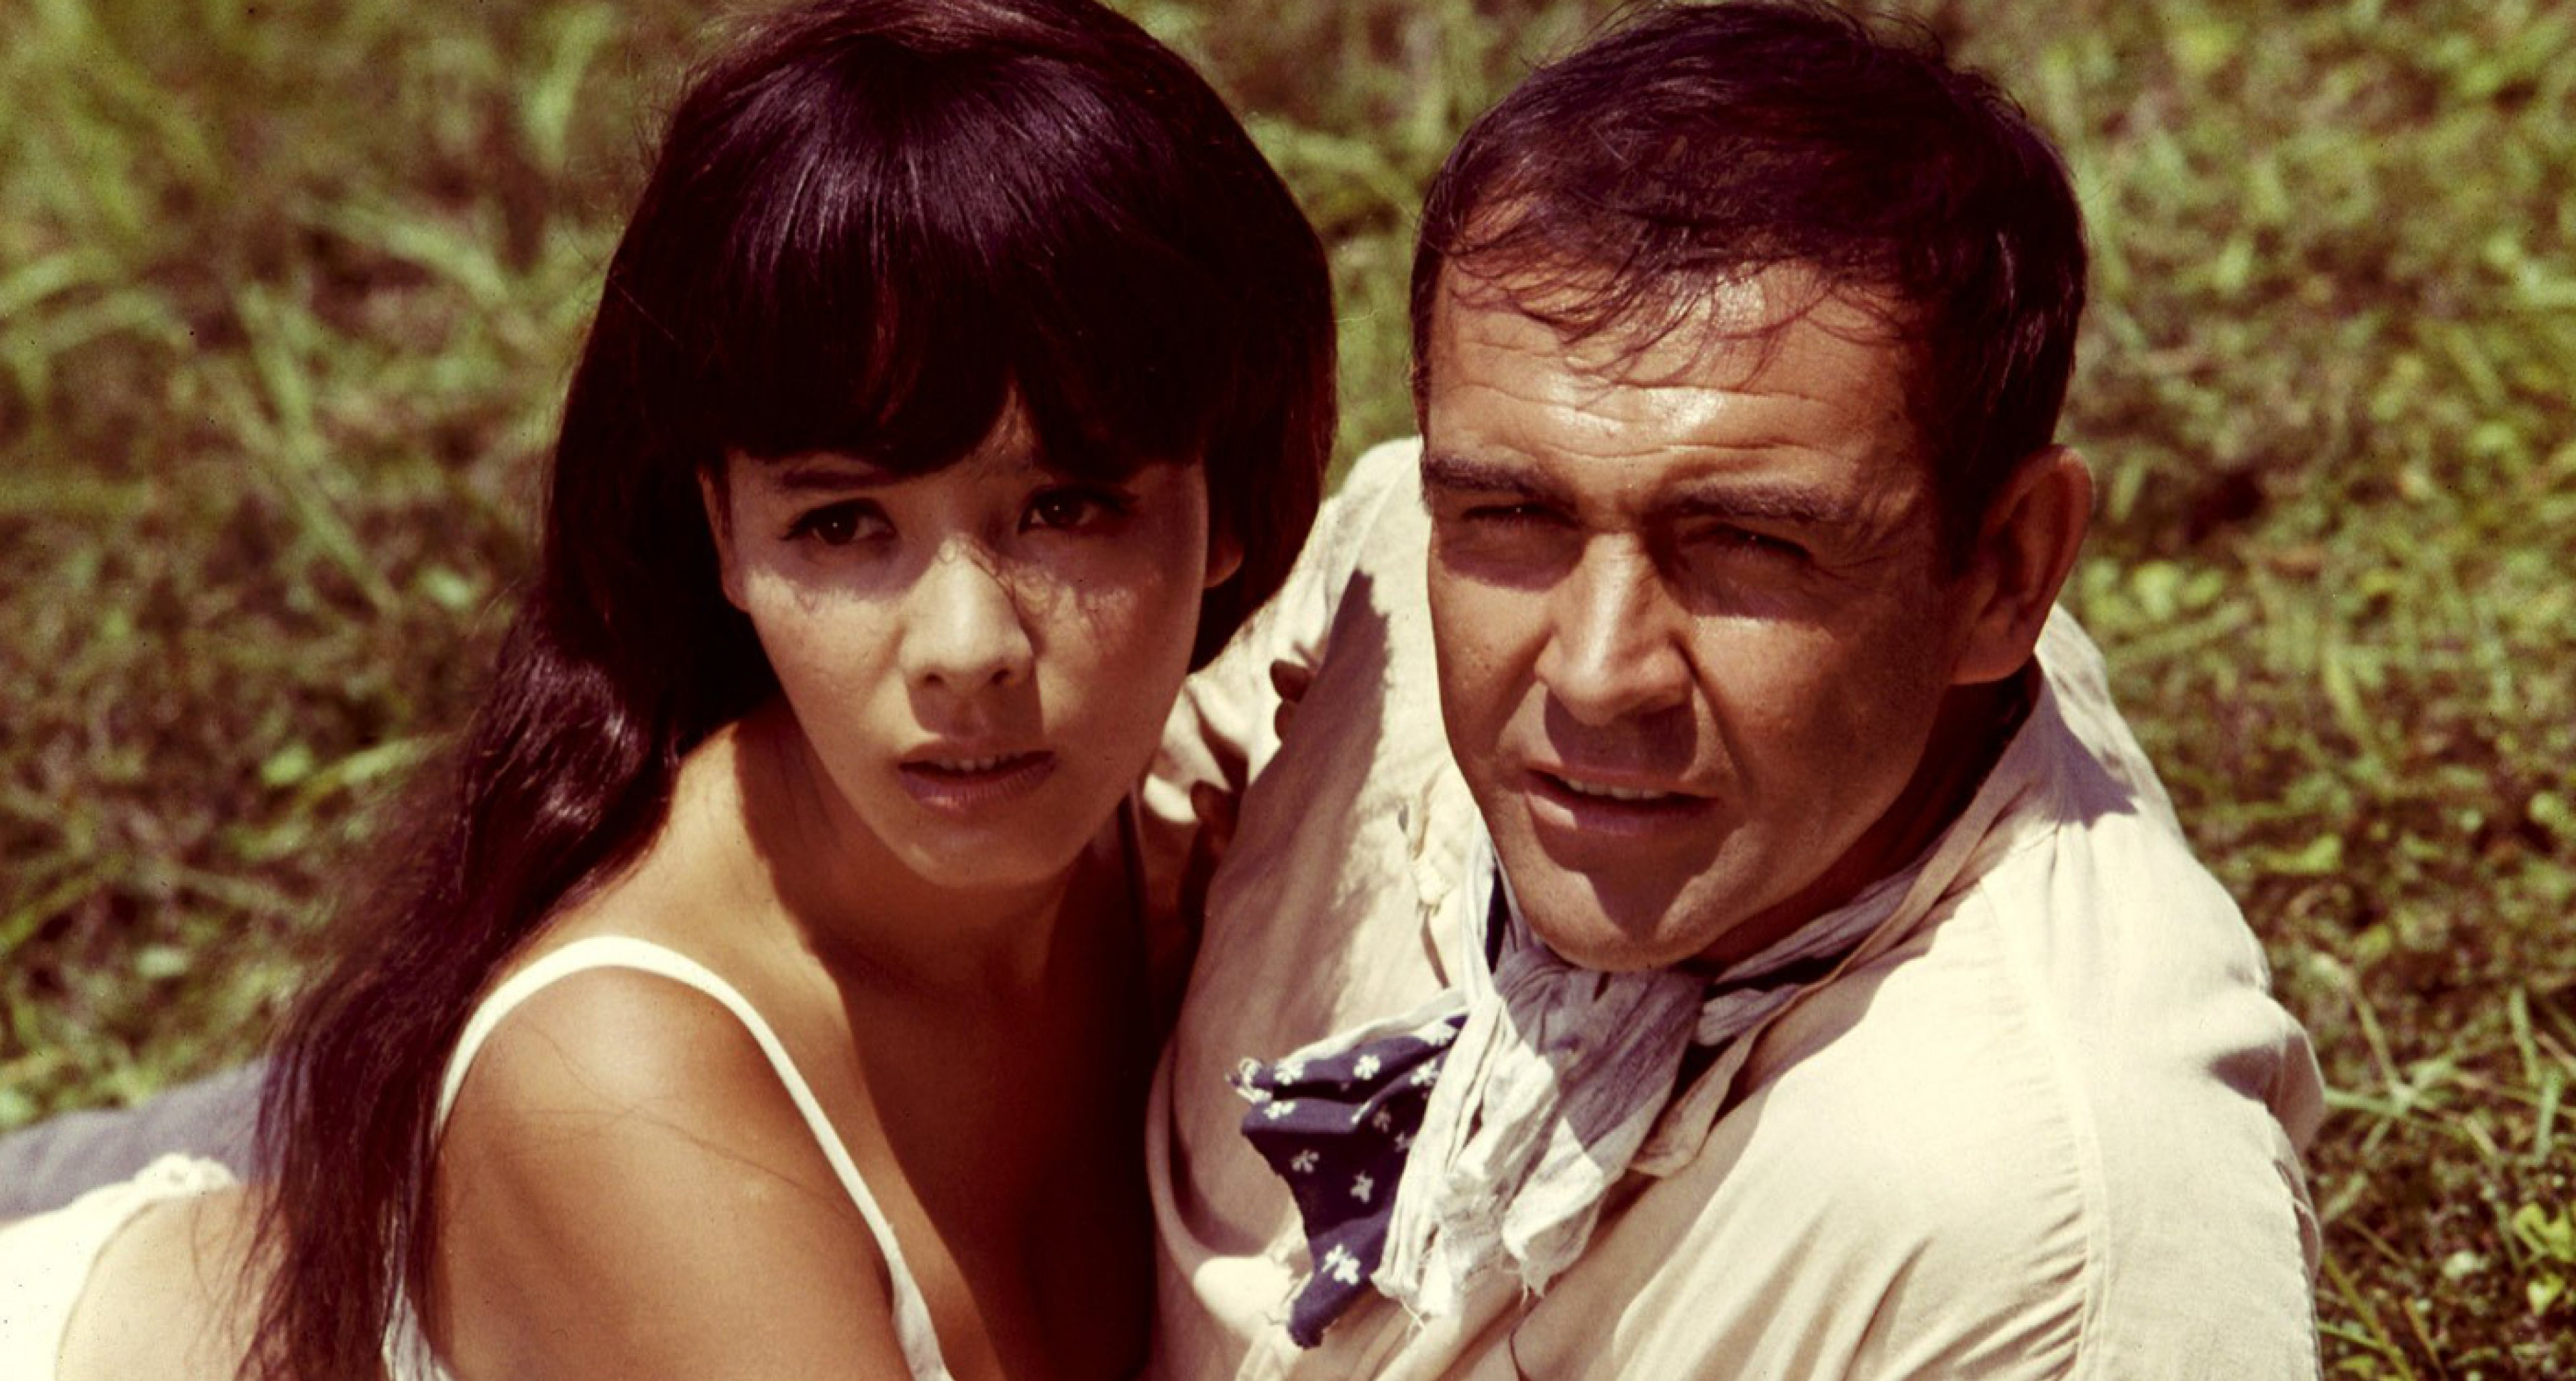 Mie Hama as Bond Girl Kissy Suzuki with Sean Connery in 'You Only Live Twice'.